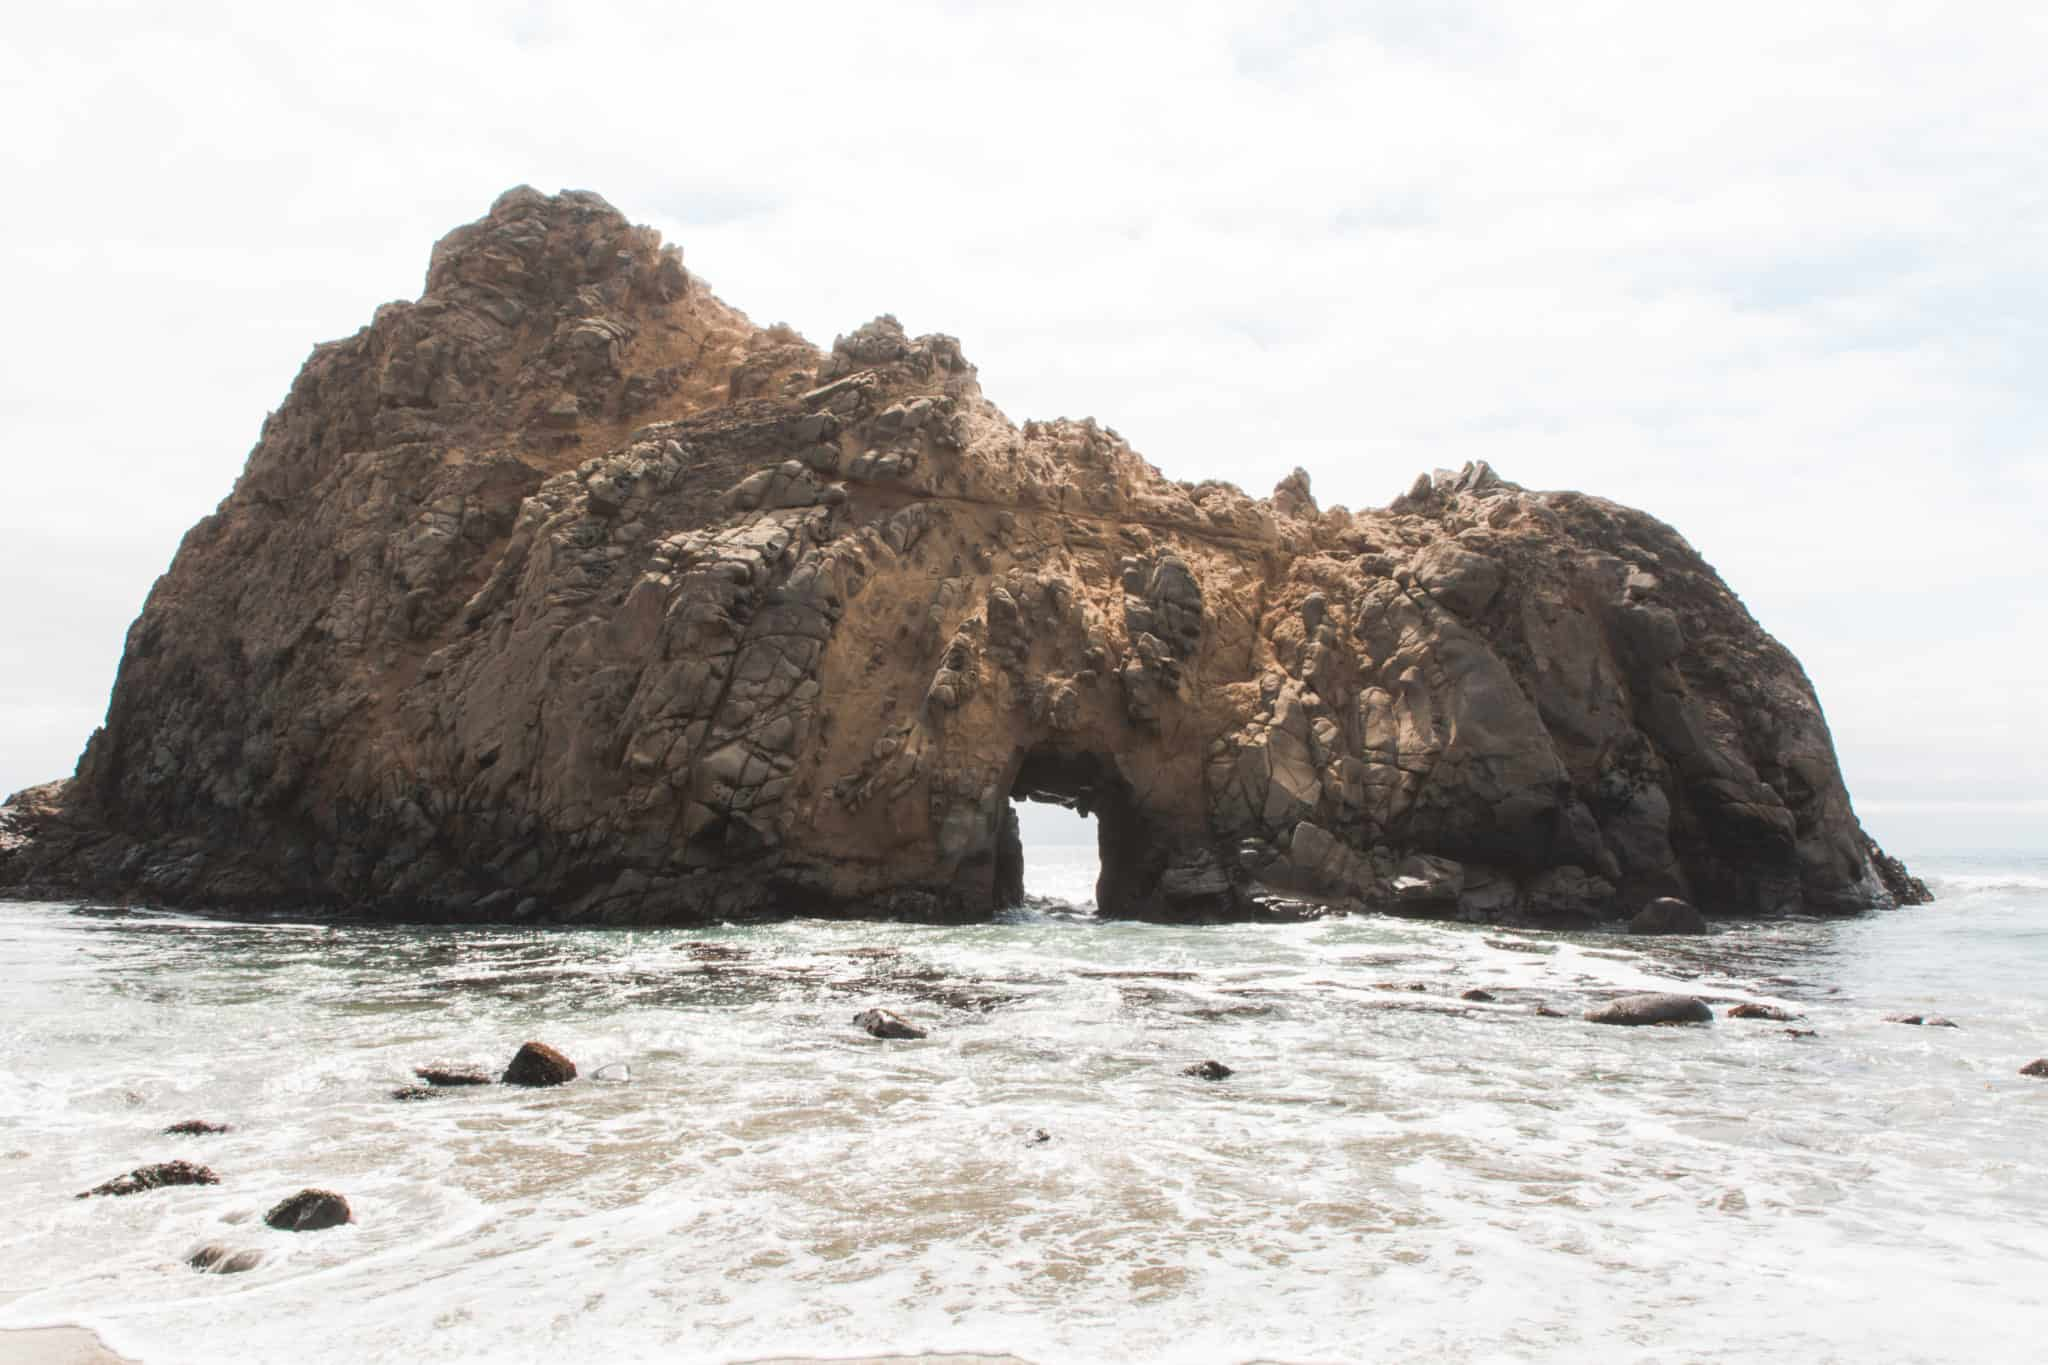 Keyhole Arch, Pfeiffer Beach, California, USA